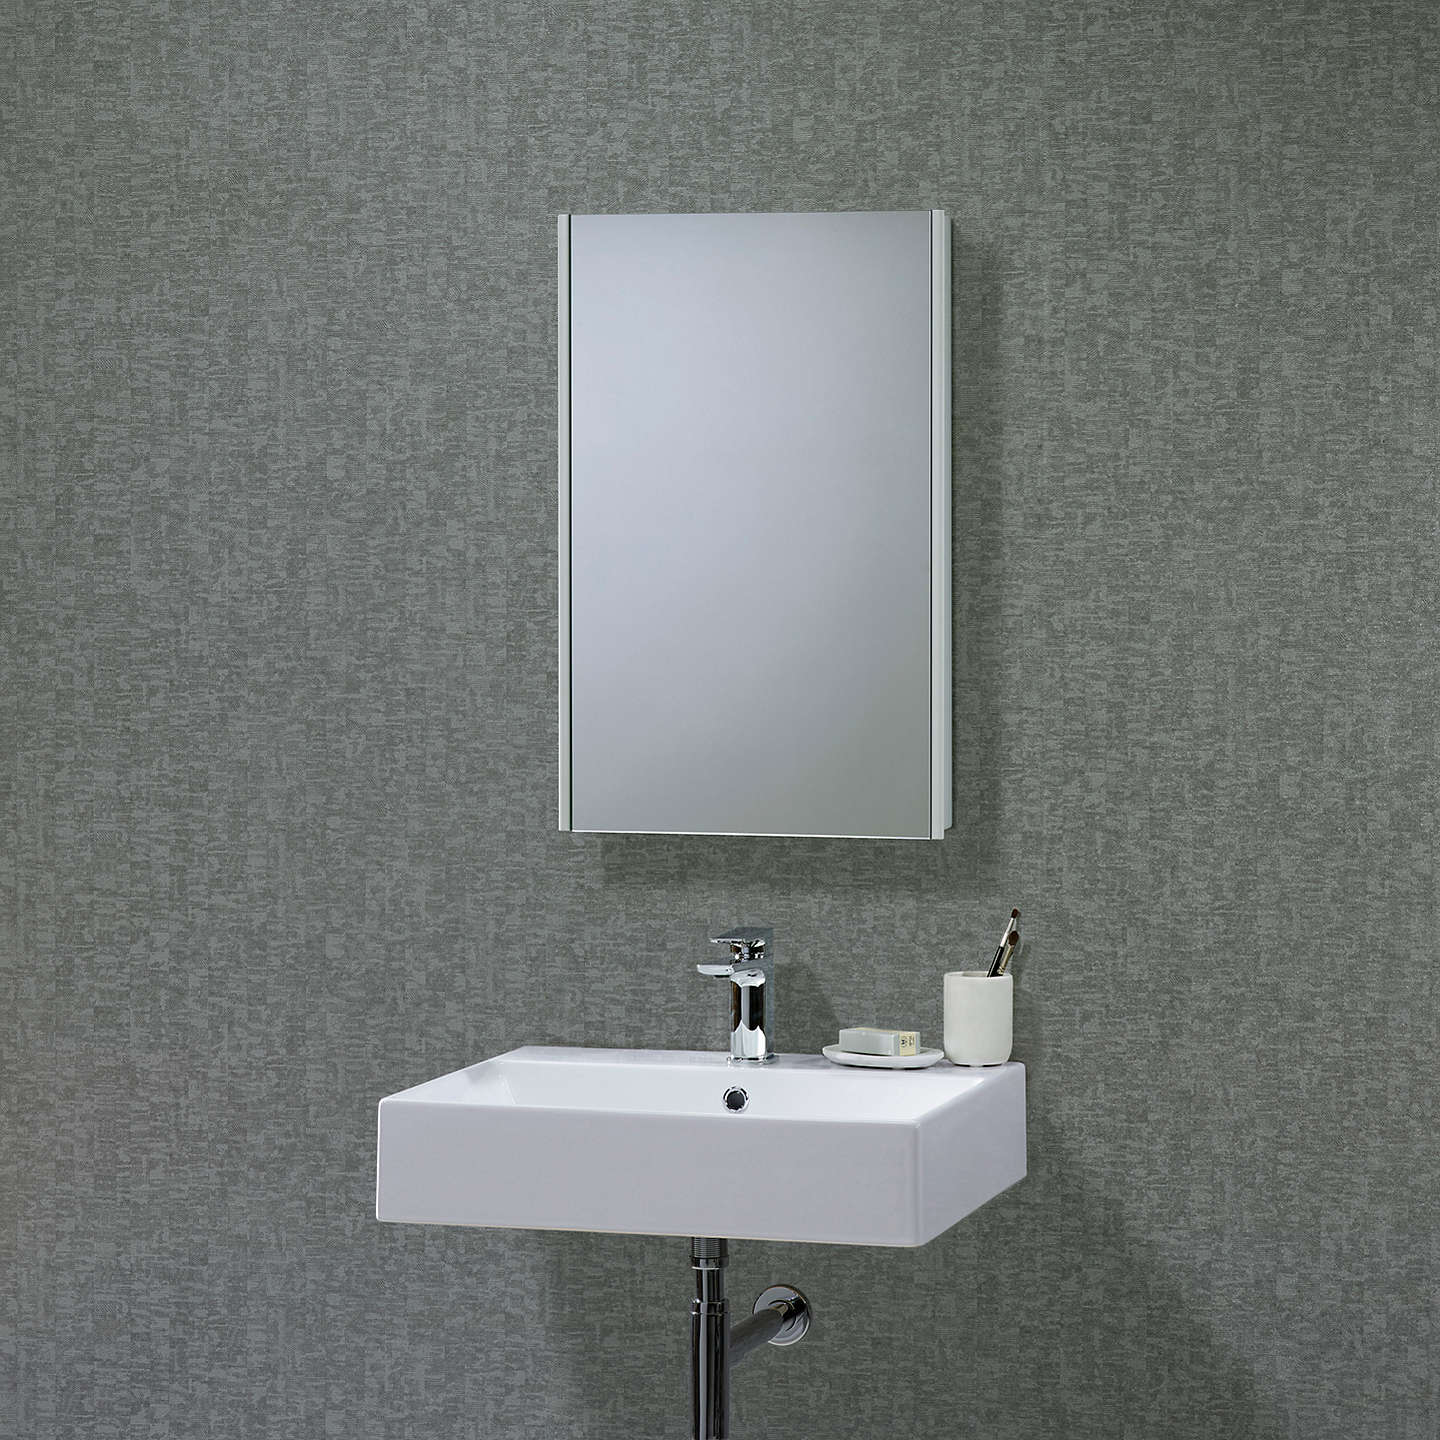 BuyRoper Rhodes Limit Slimline Single Mirrored Bathroom Cabinet Online at johnlewis.com ... & Roper Rhodes Limit Slimline Single Mirrored Bathroom Cabinet at John ...